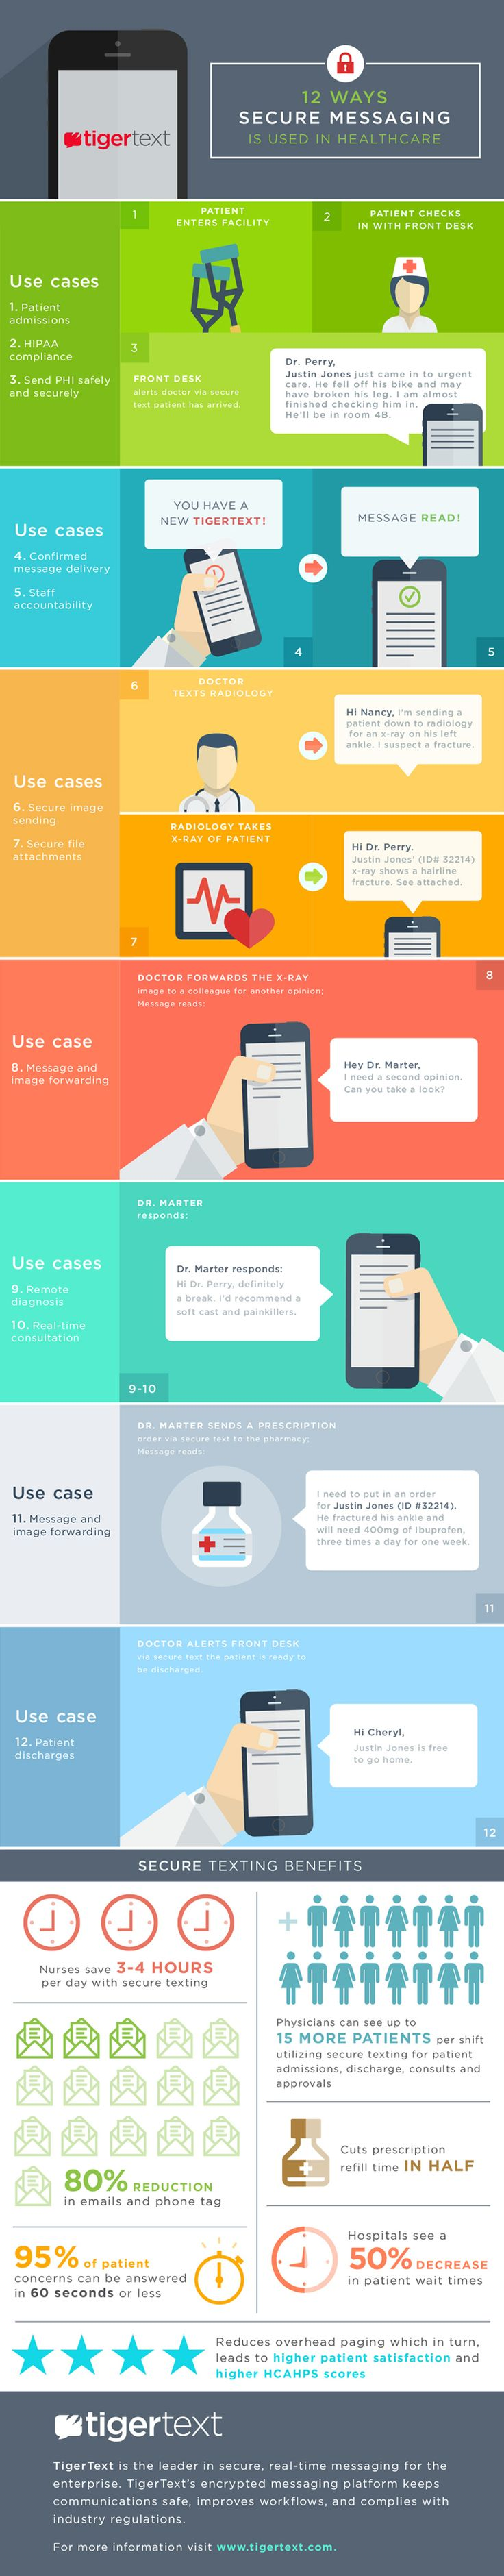 12 Ways Secure Texting Is Used in Healthcare | New Visions Healthcare Blog #healthcare #texting #efficiency #eHealth #mHealth - www.healthcoverageally.com